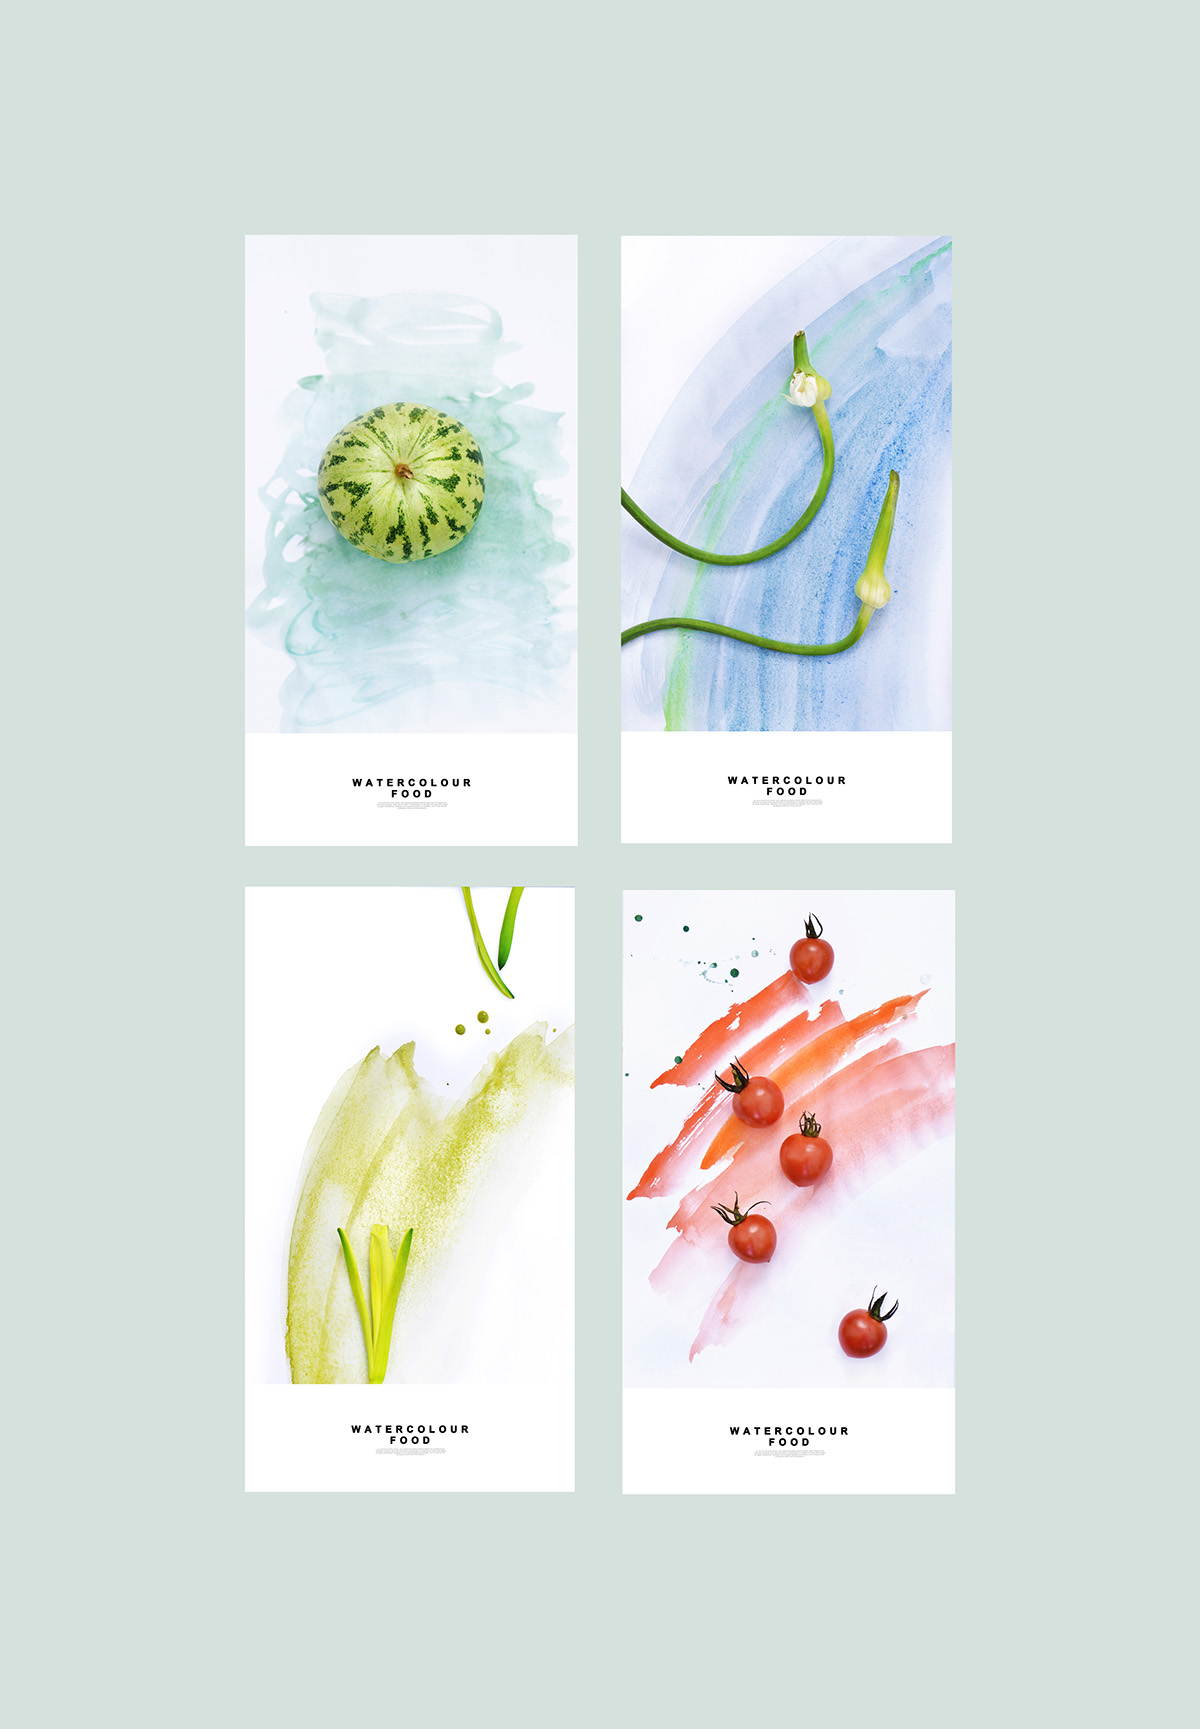 Watercolor Food Yum Tang